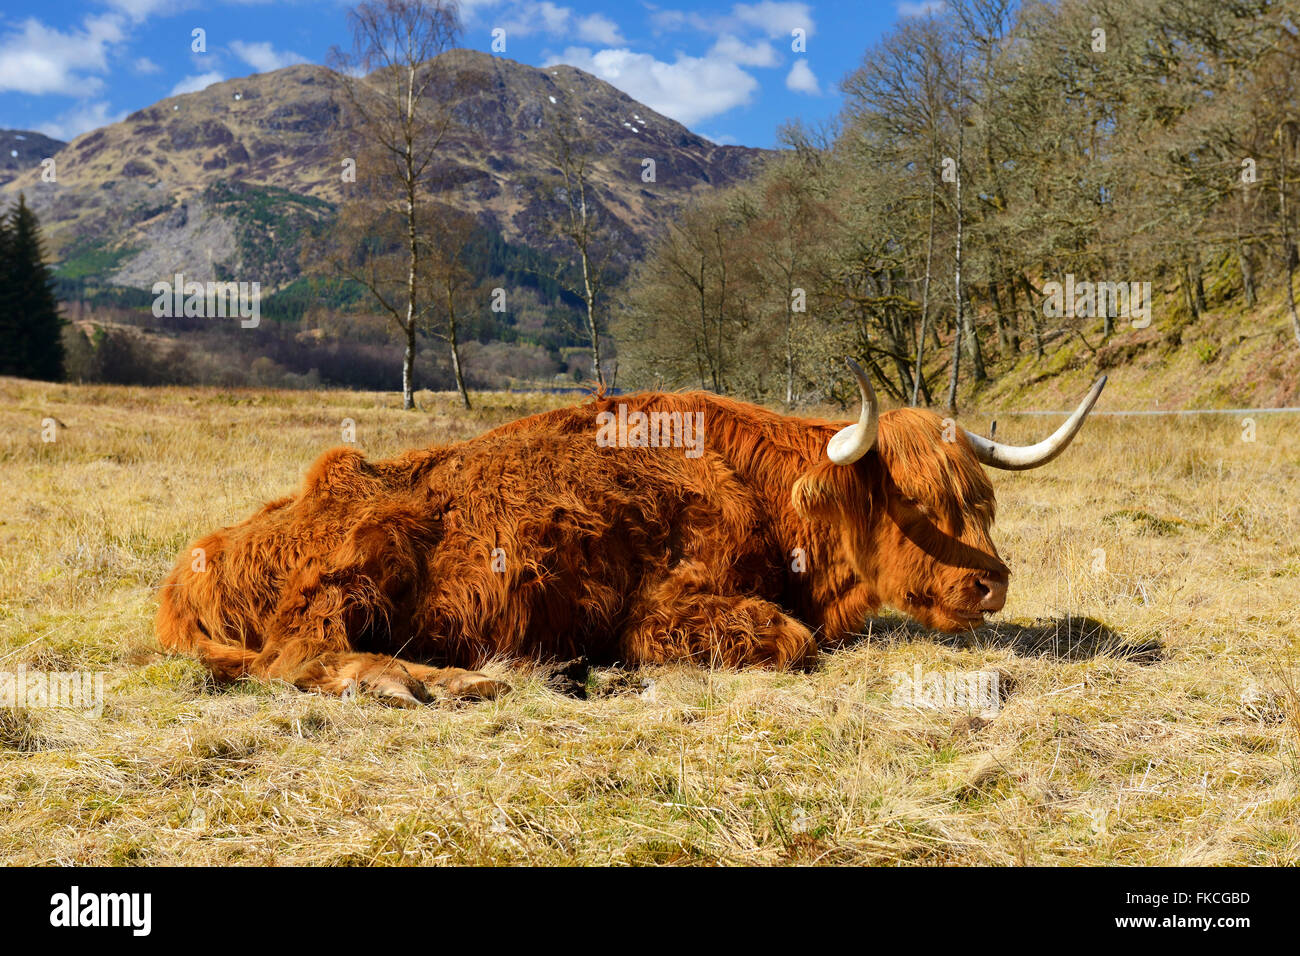 Highland cow laying down, Achray Forest Drive, Trossachs, Scotland, UK - Stock Image